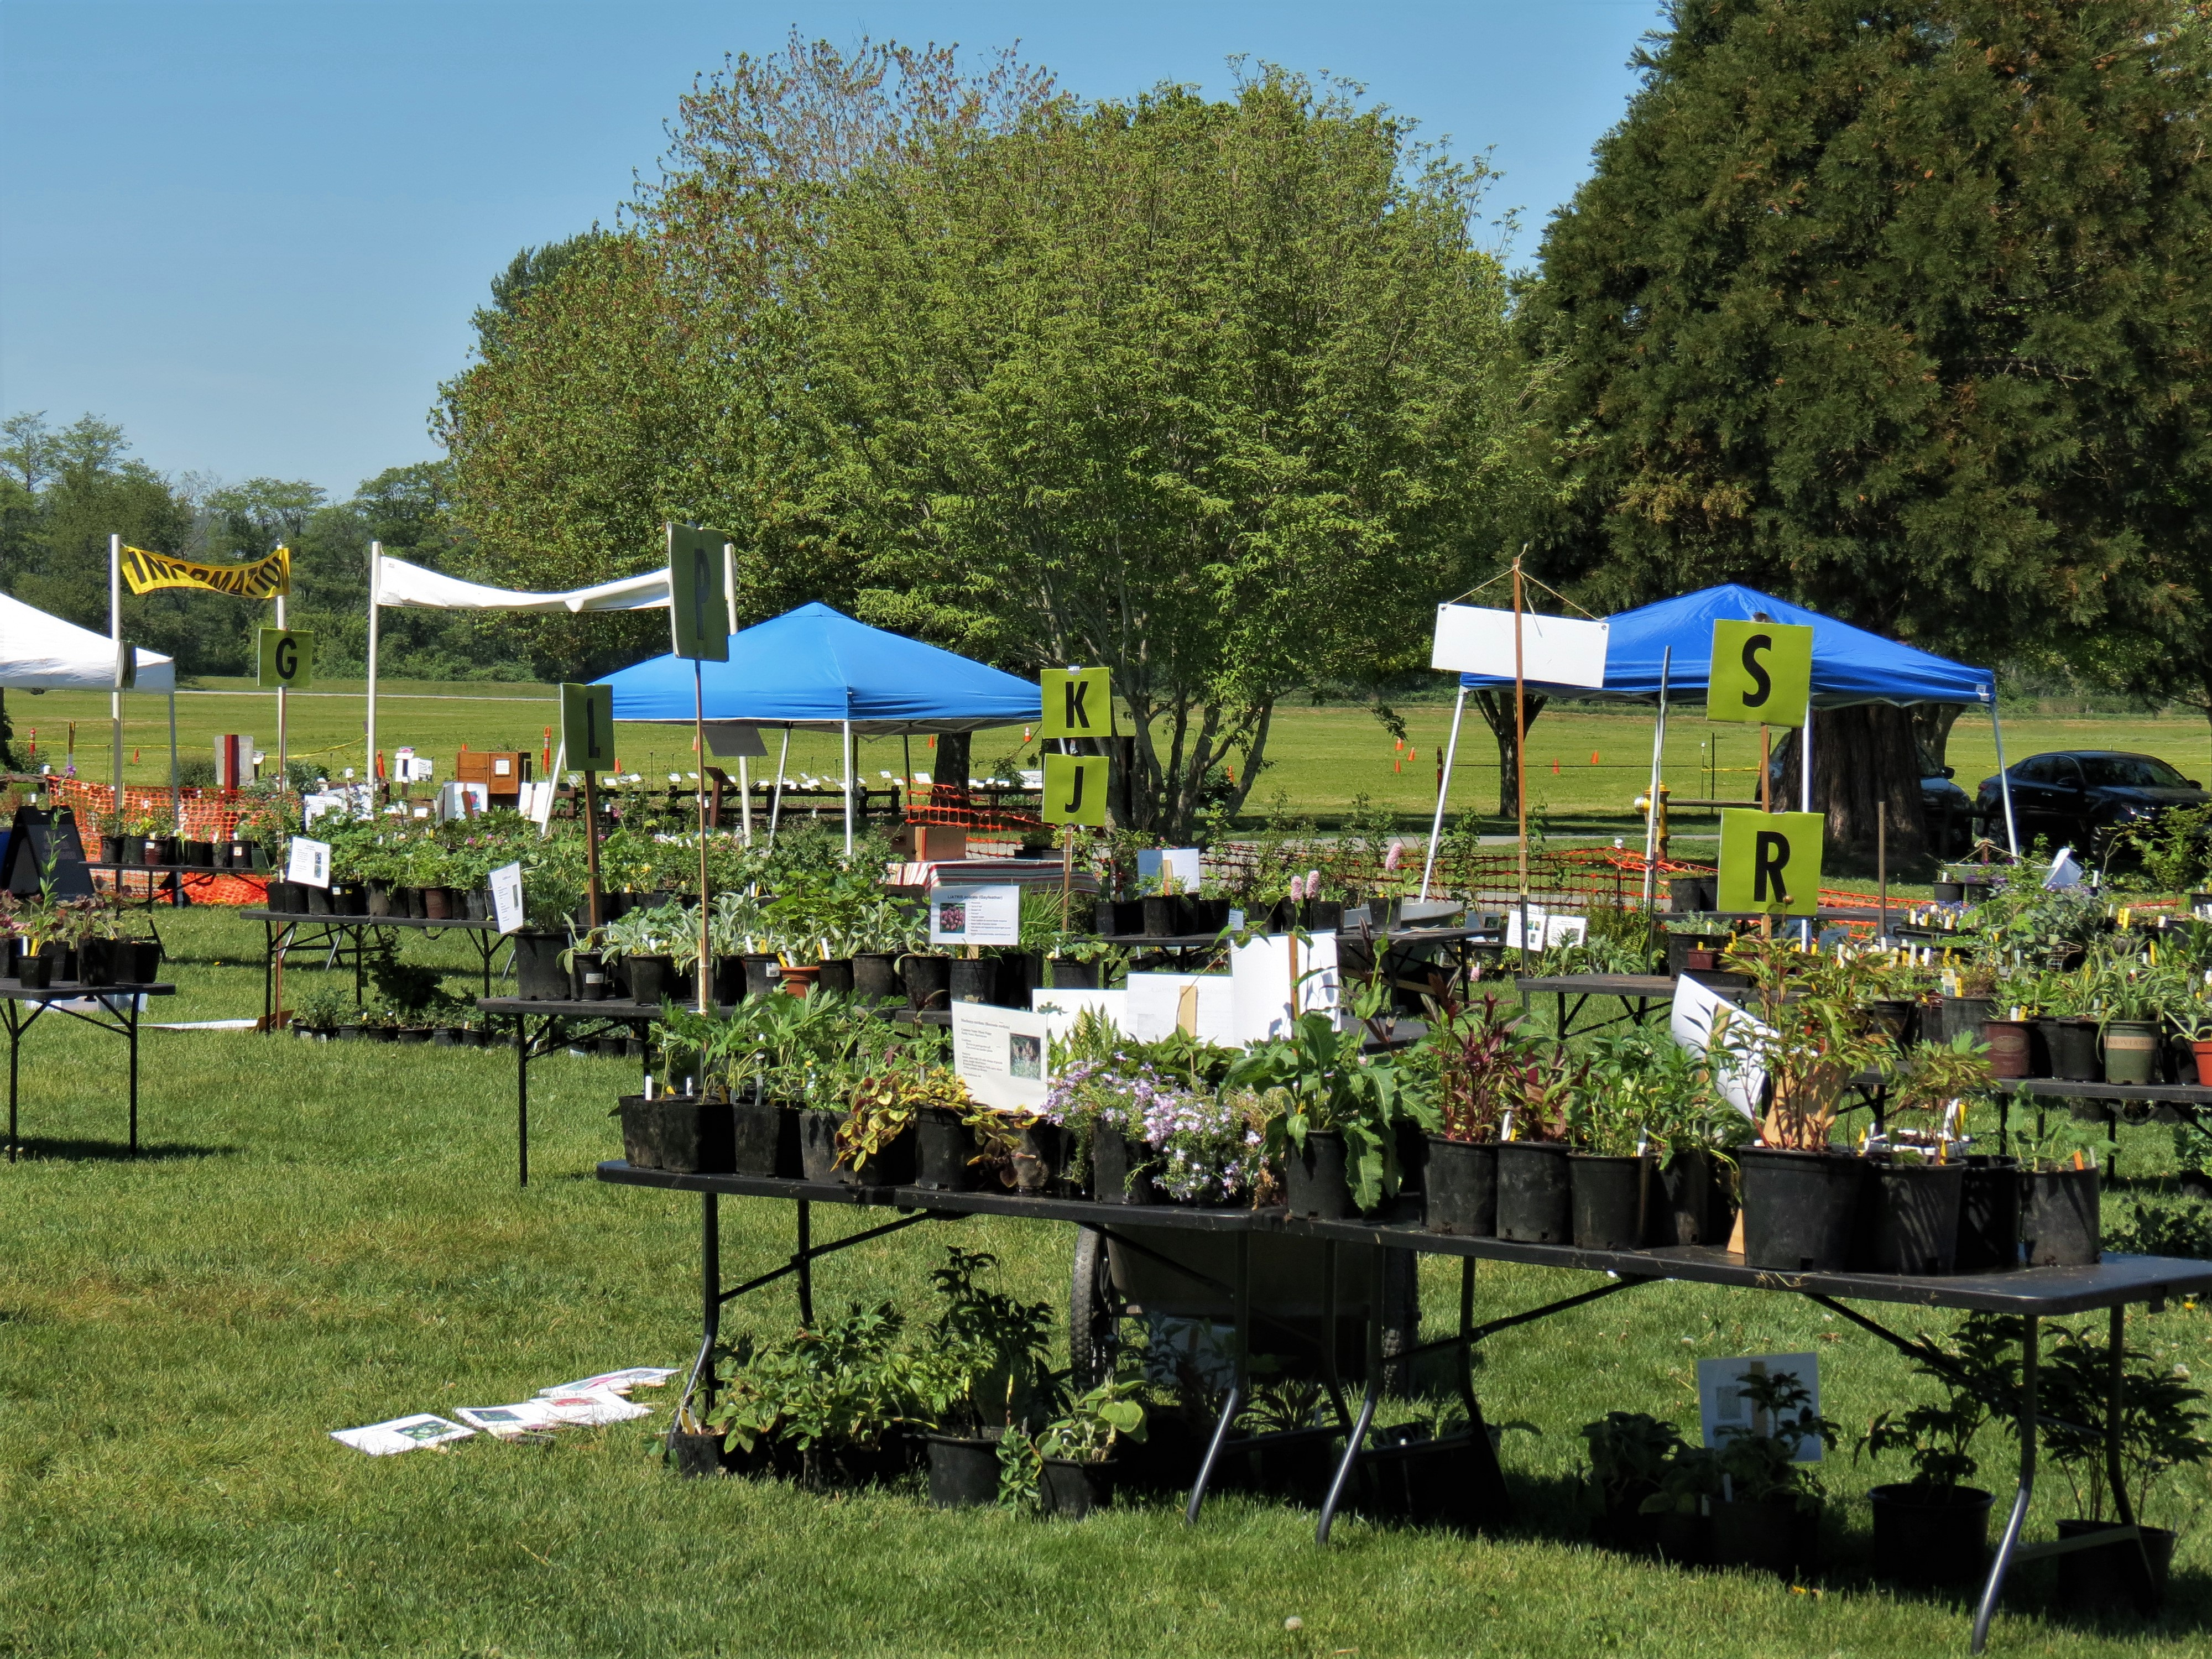 Whatcom Master Gardeners plant sale at Hovander Homestead Park (May 10, 2019). Photo: My Ferndale News